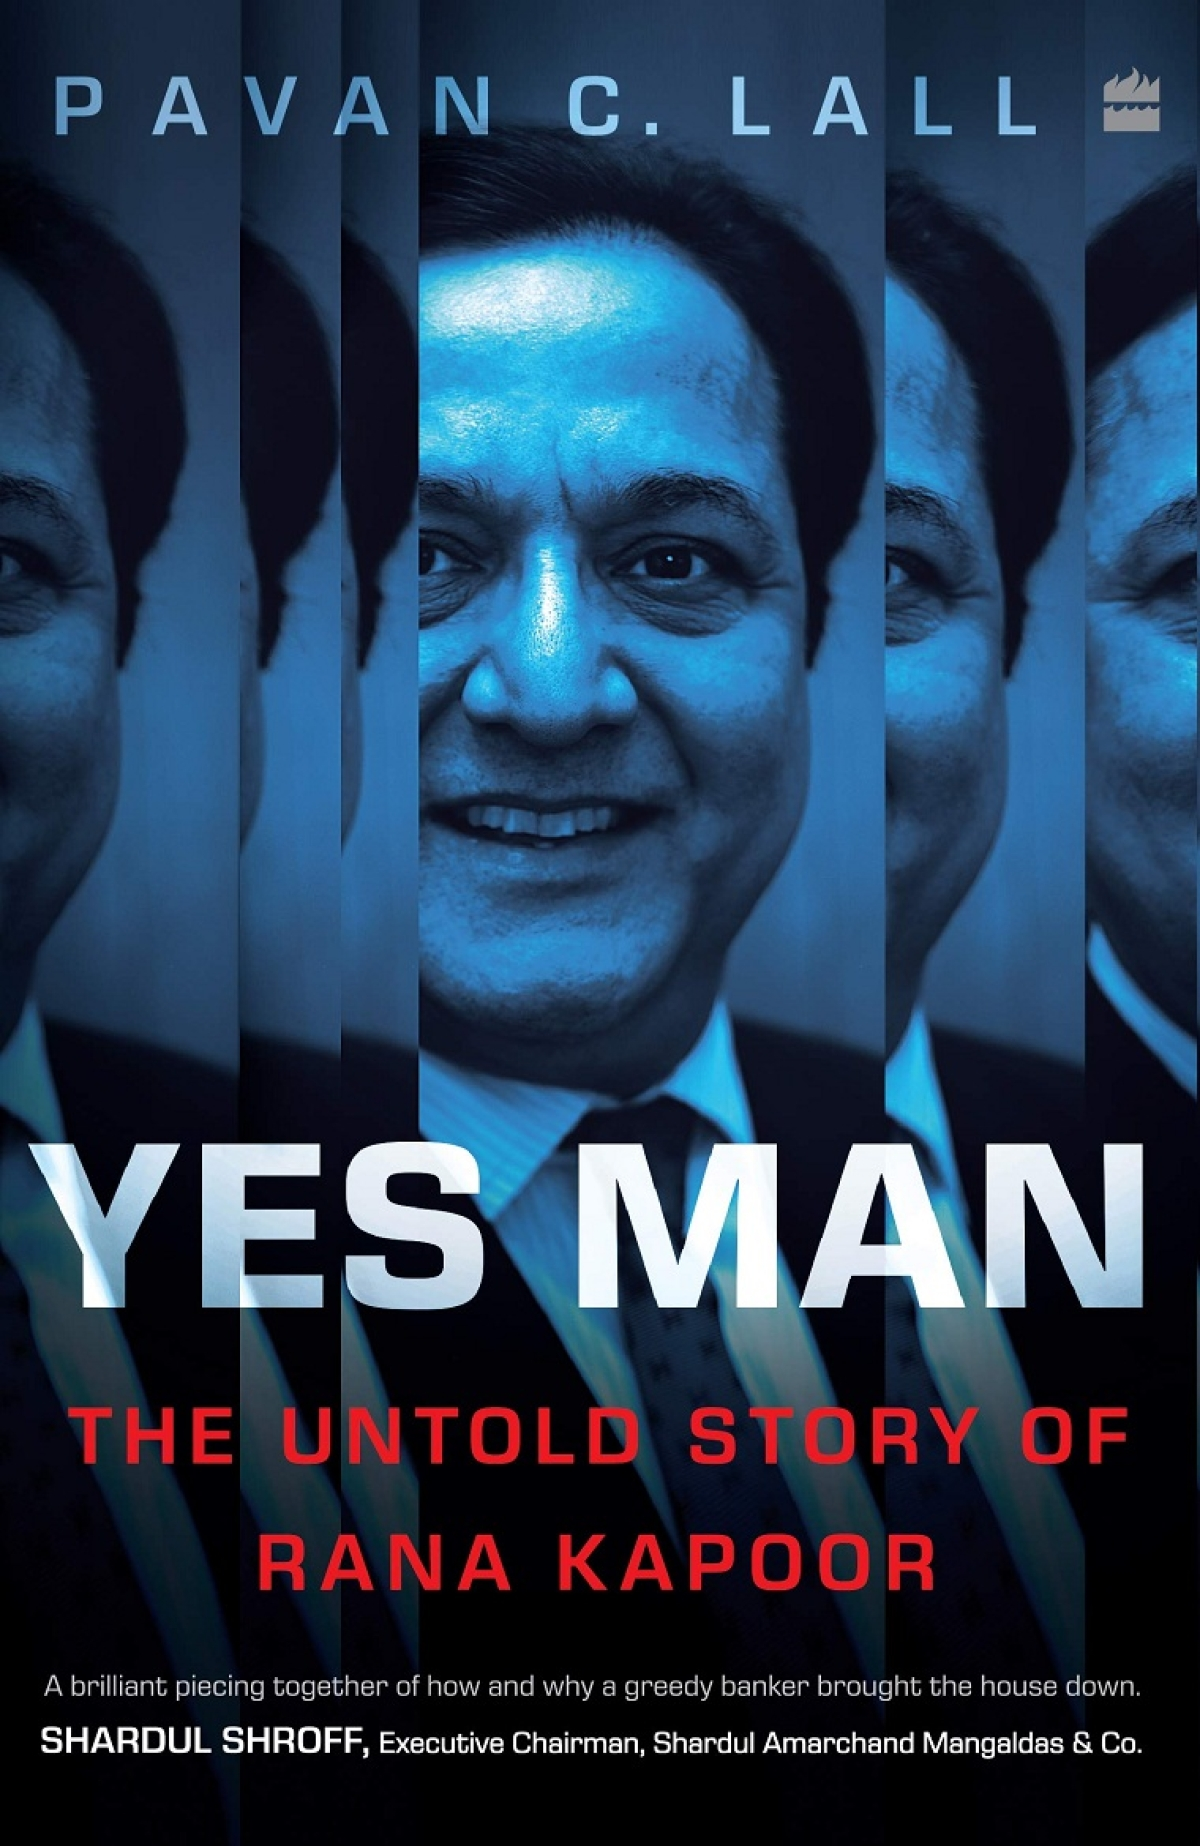 Yes Man - The Untold Story of Rana Kapoor review: The book explores the psyche of a fallen entrepreneur